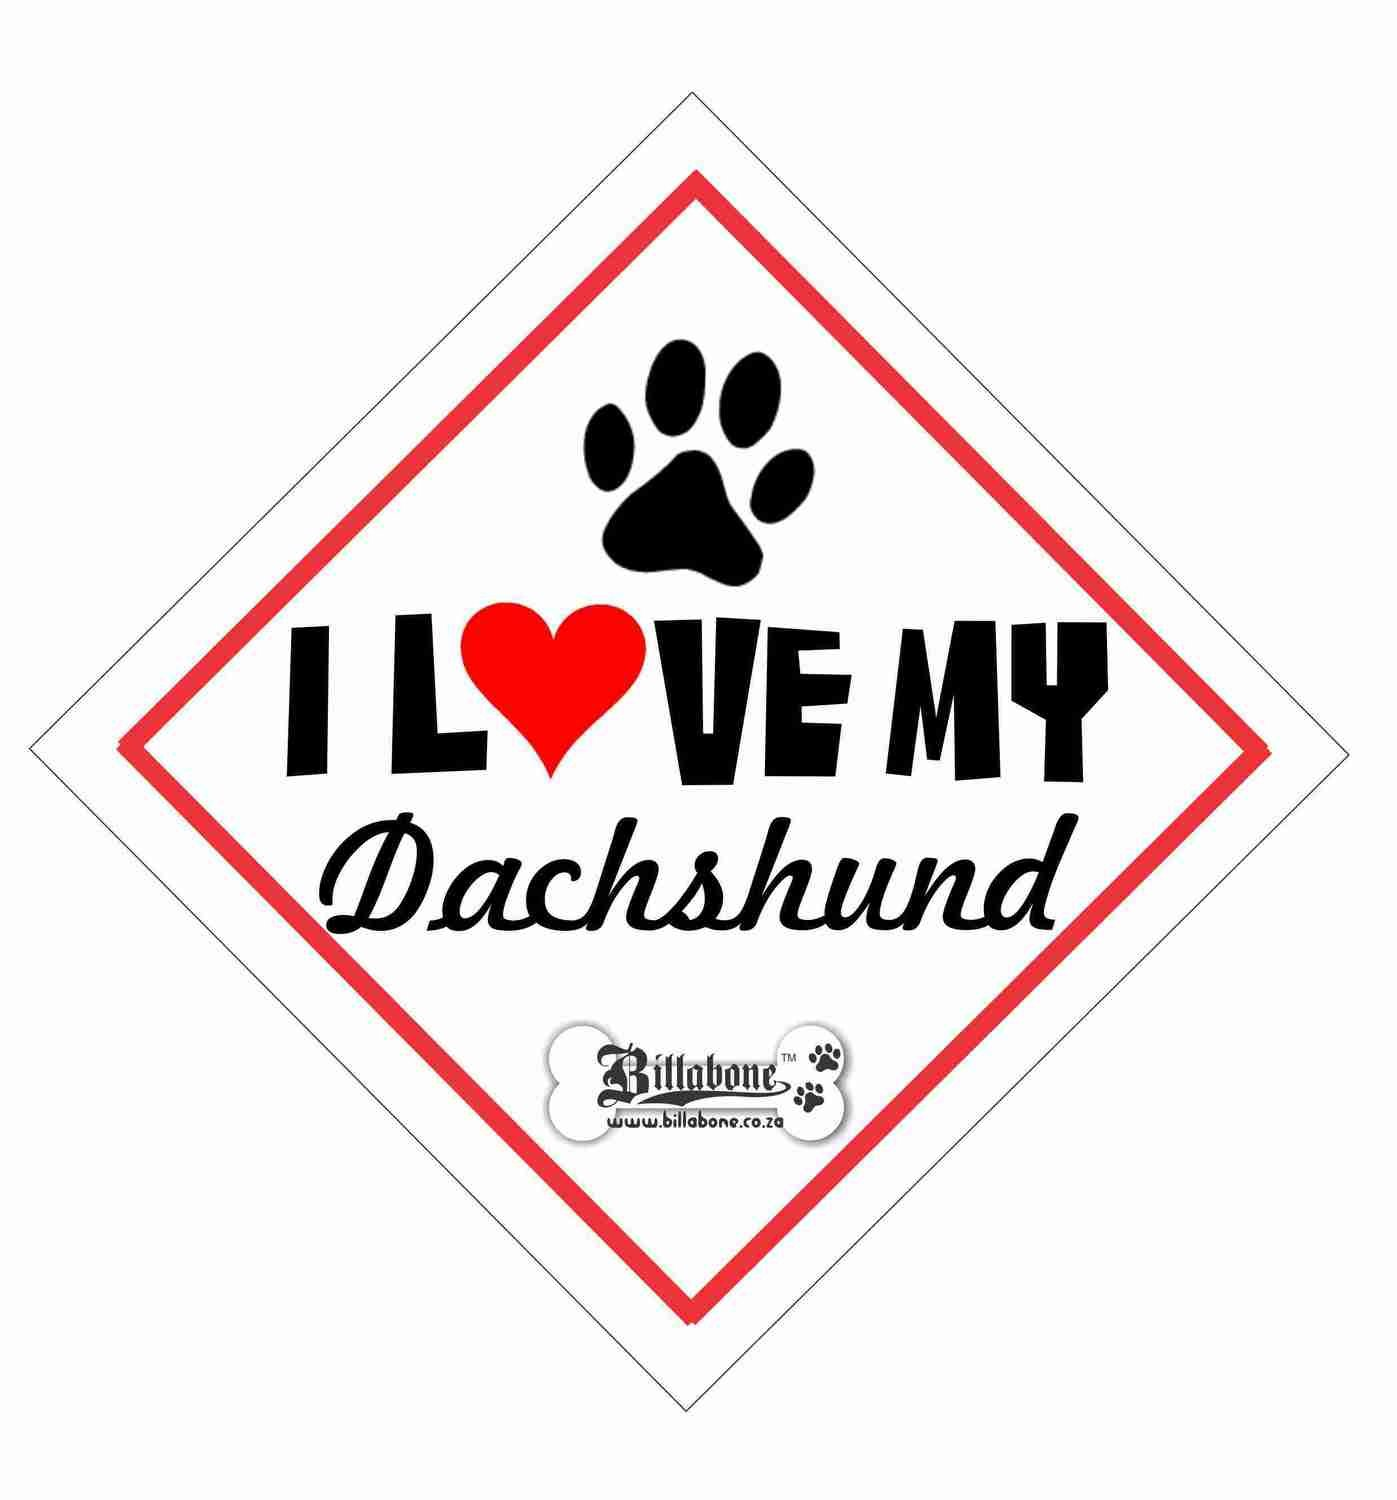 Billabone - I love my Dachshund On Board Sign or Decal